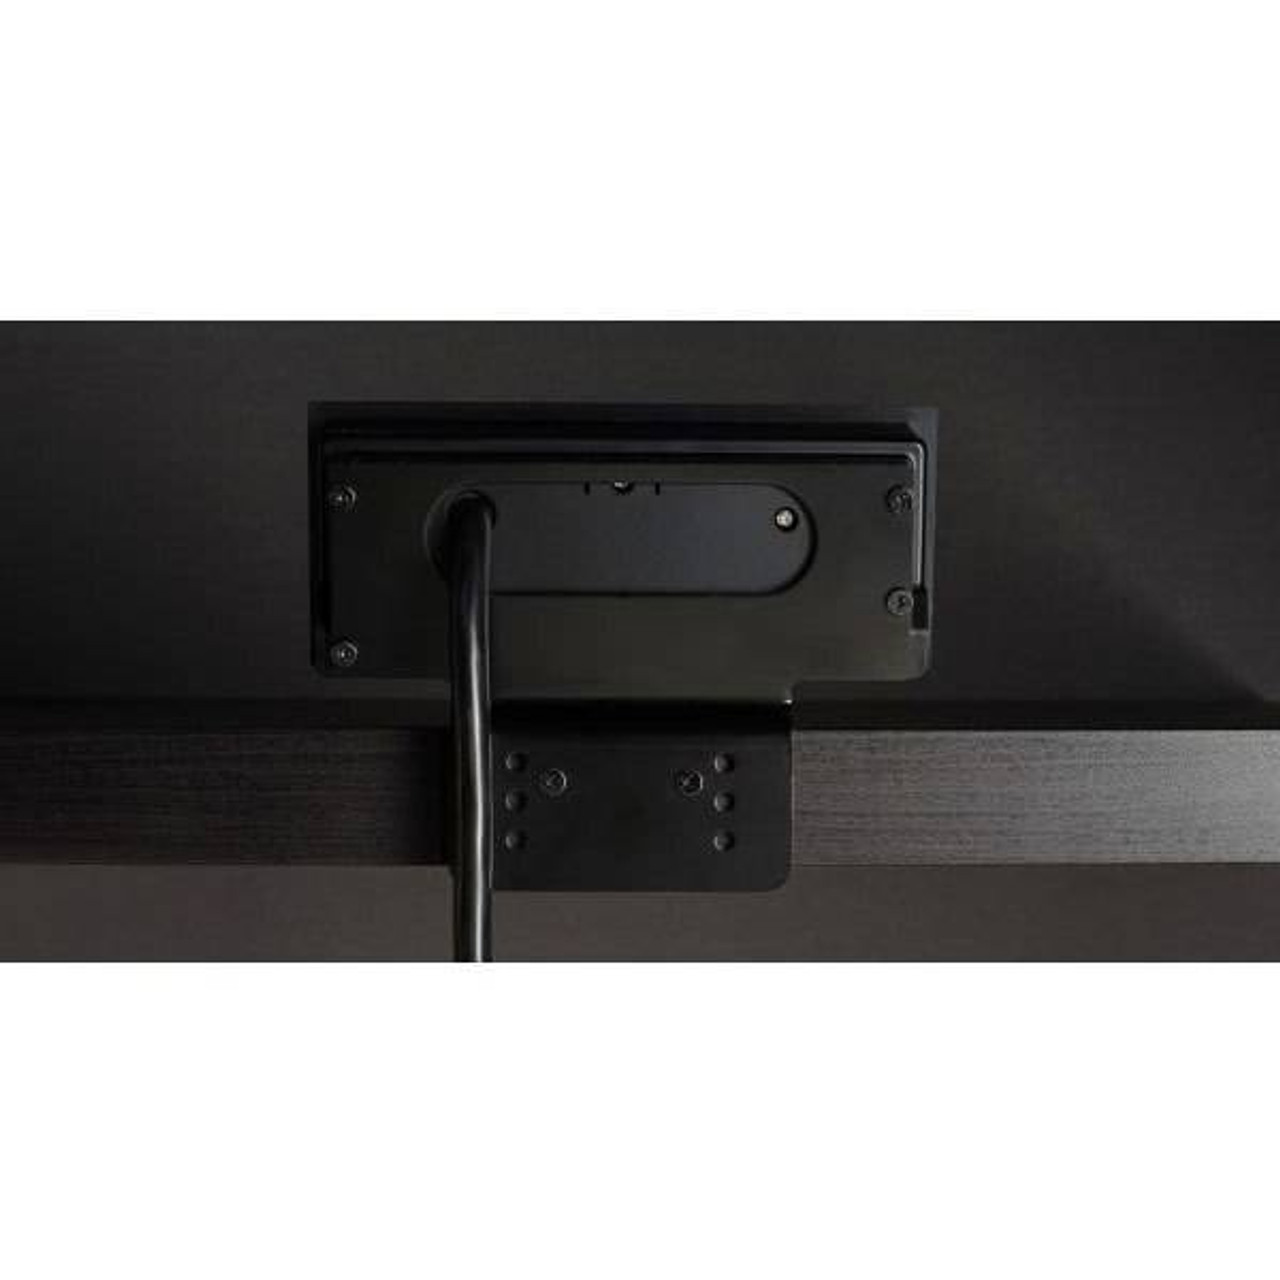 Brandstand BRANDSTAND CUBIEDASH UPRIGHT POWER and CHARGING SOLUTION W/ 2 USB PORTS and 3 POWER OUTLETS BLACK